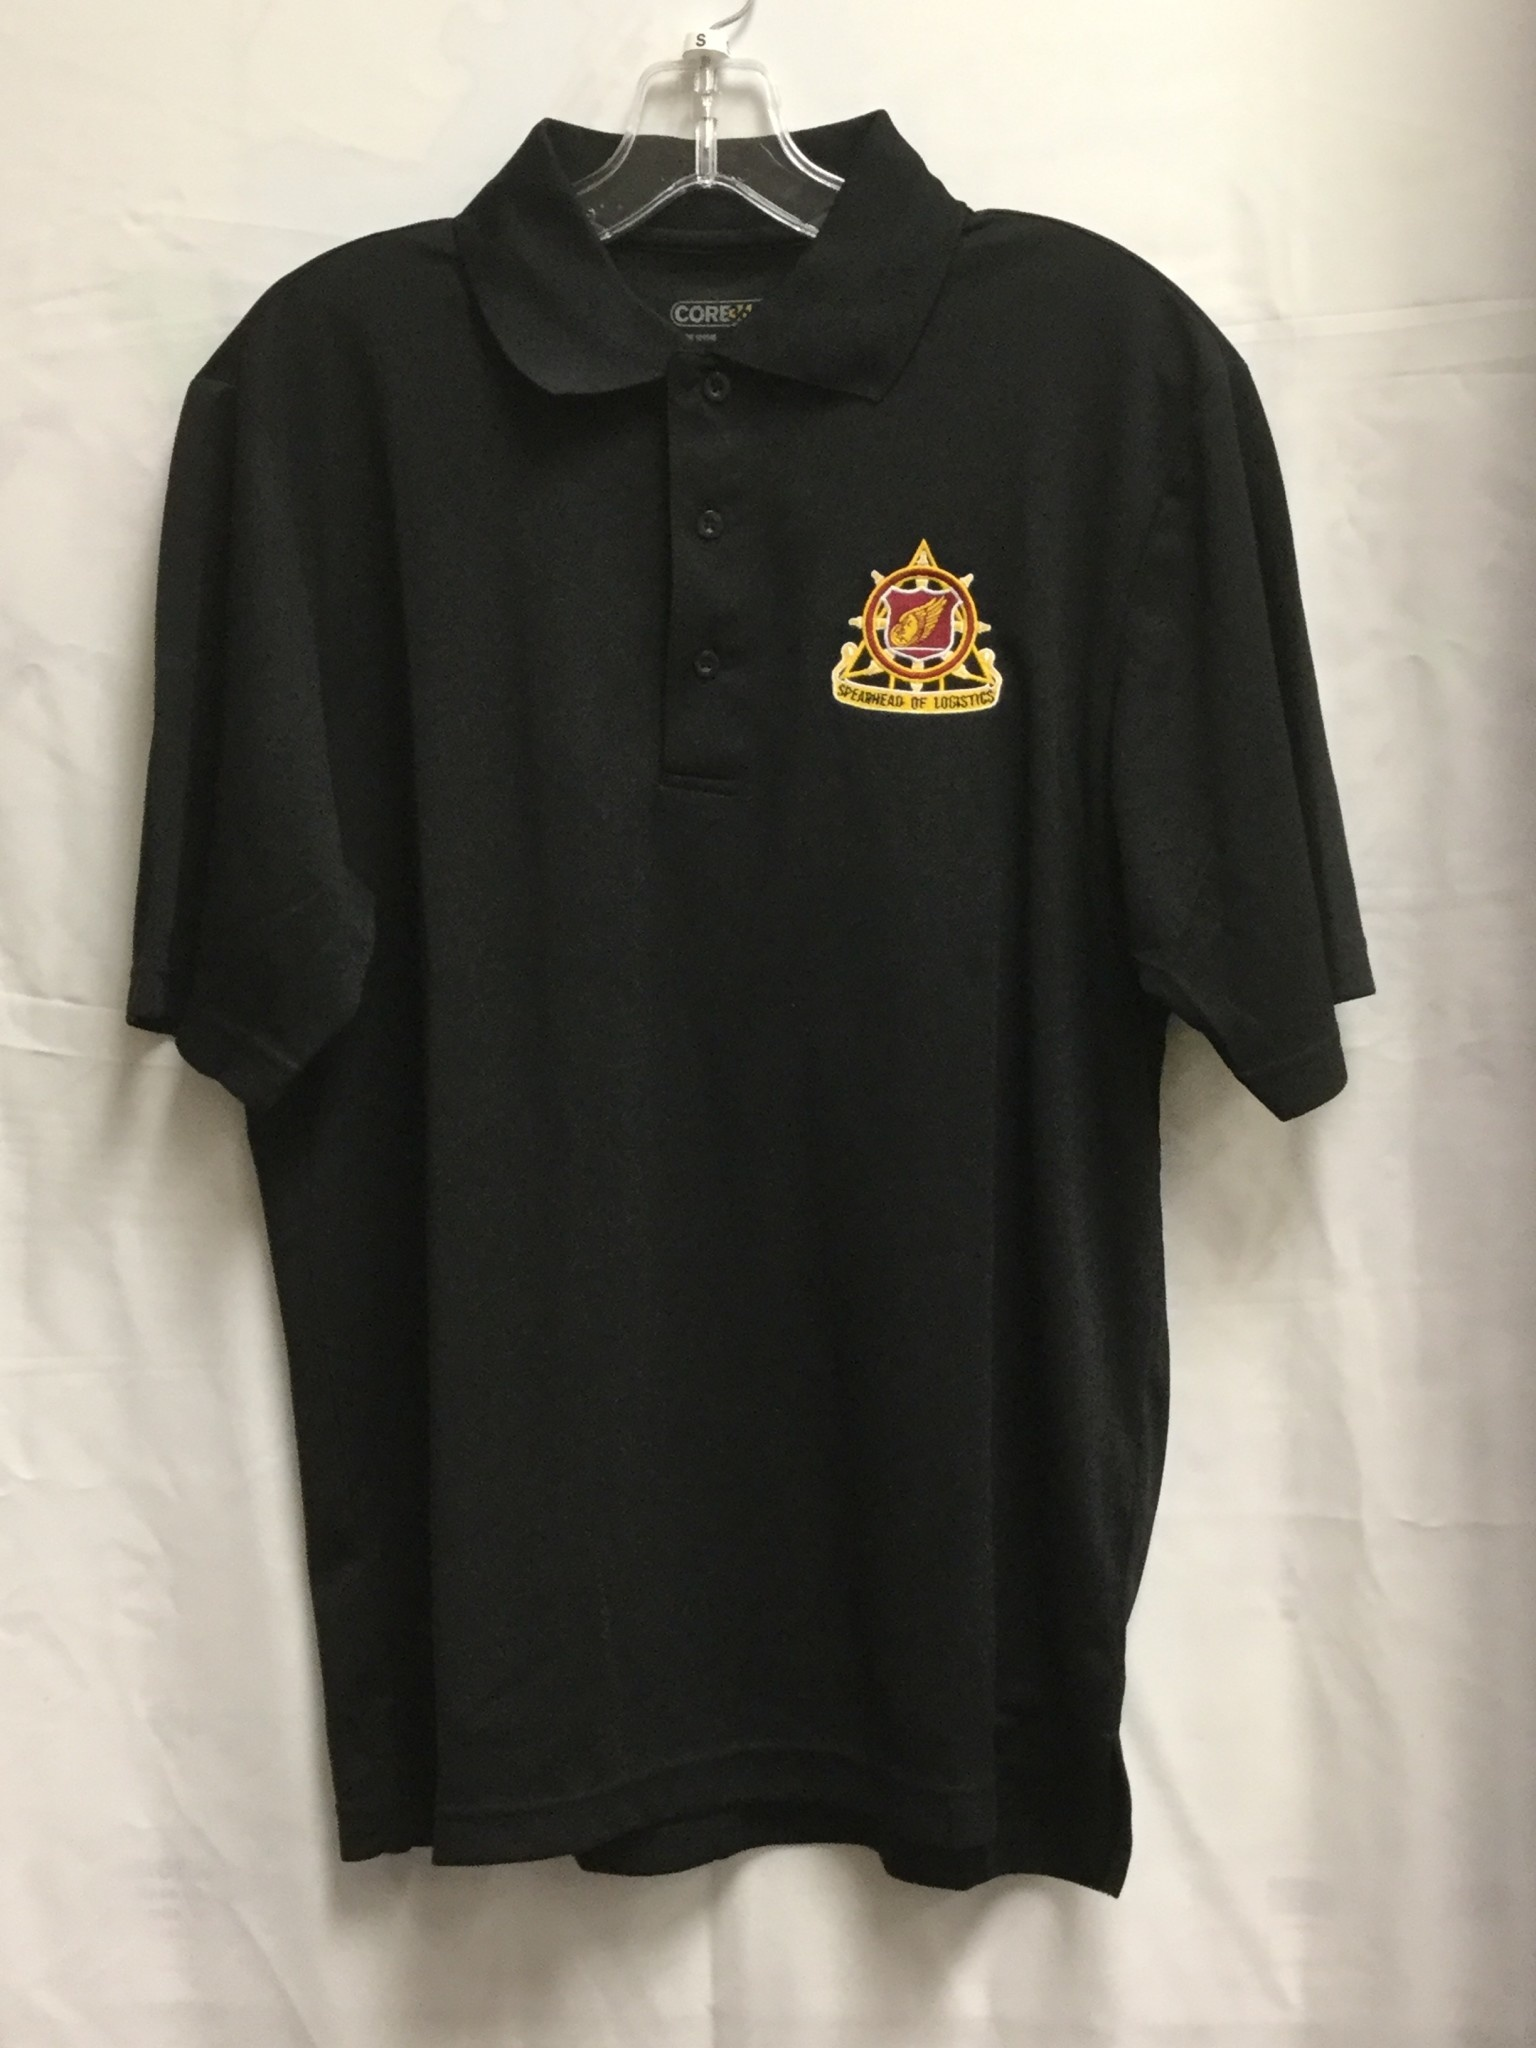 GOLF REGT BLACK 3XL